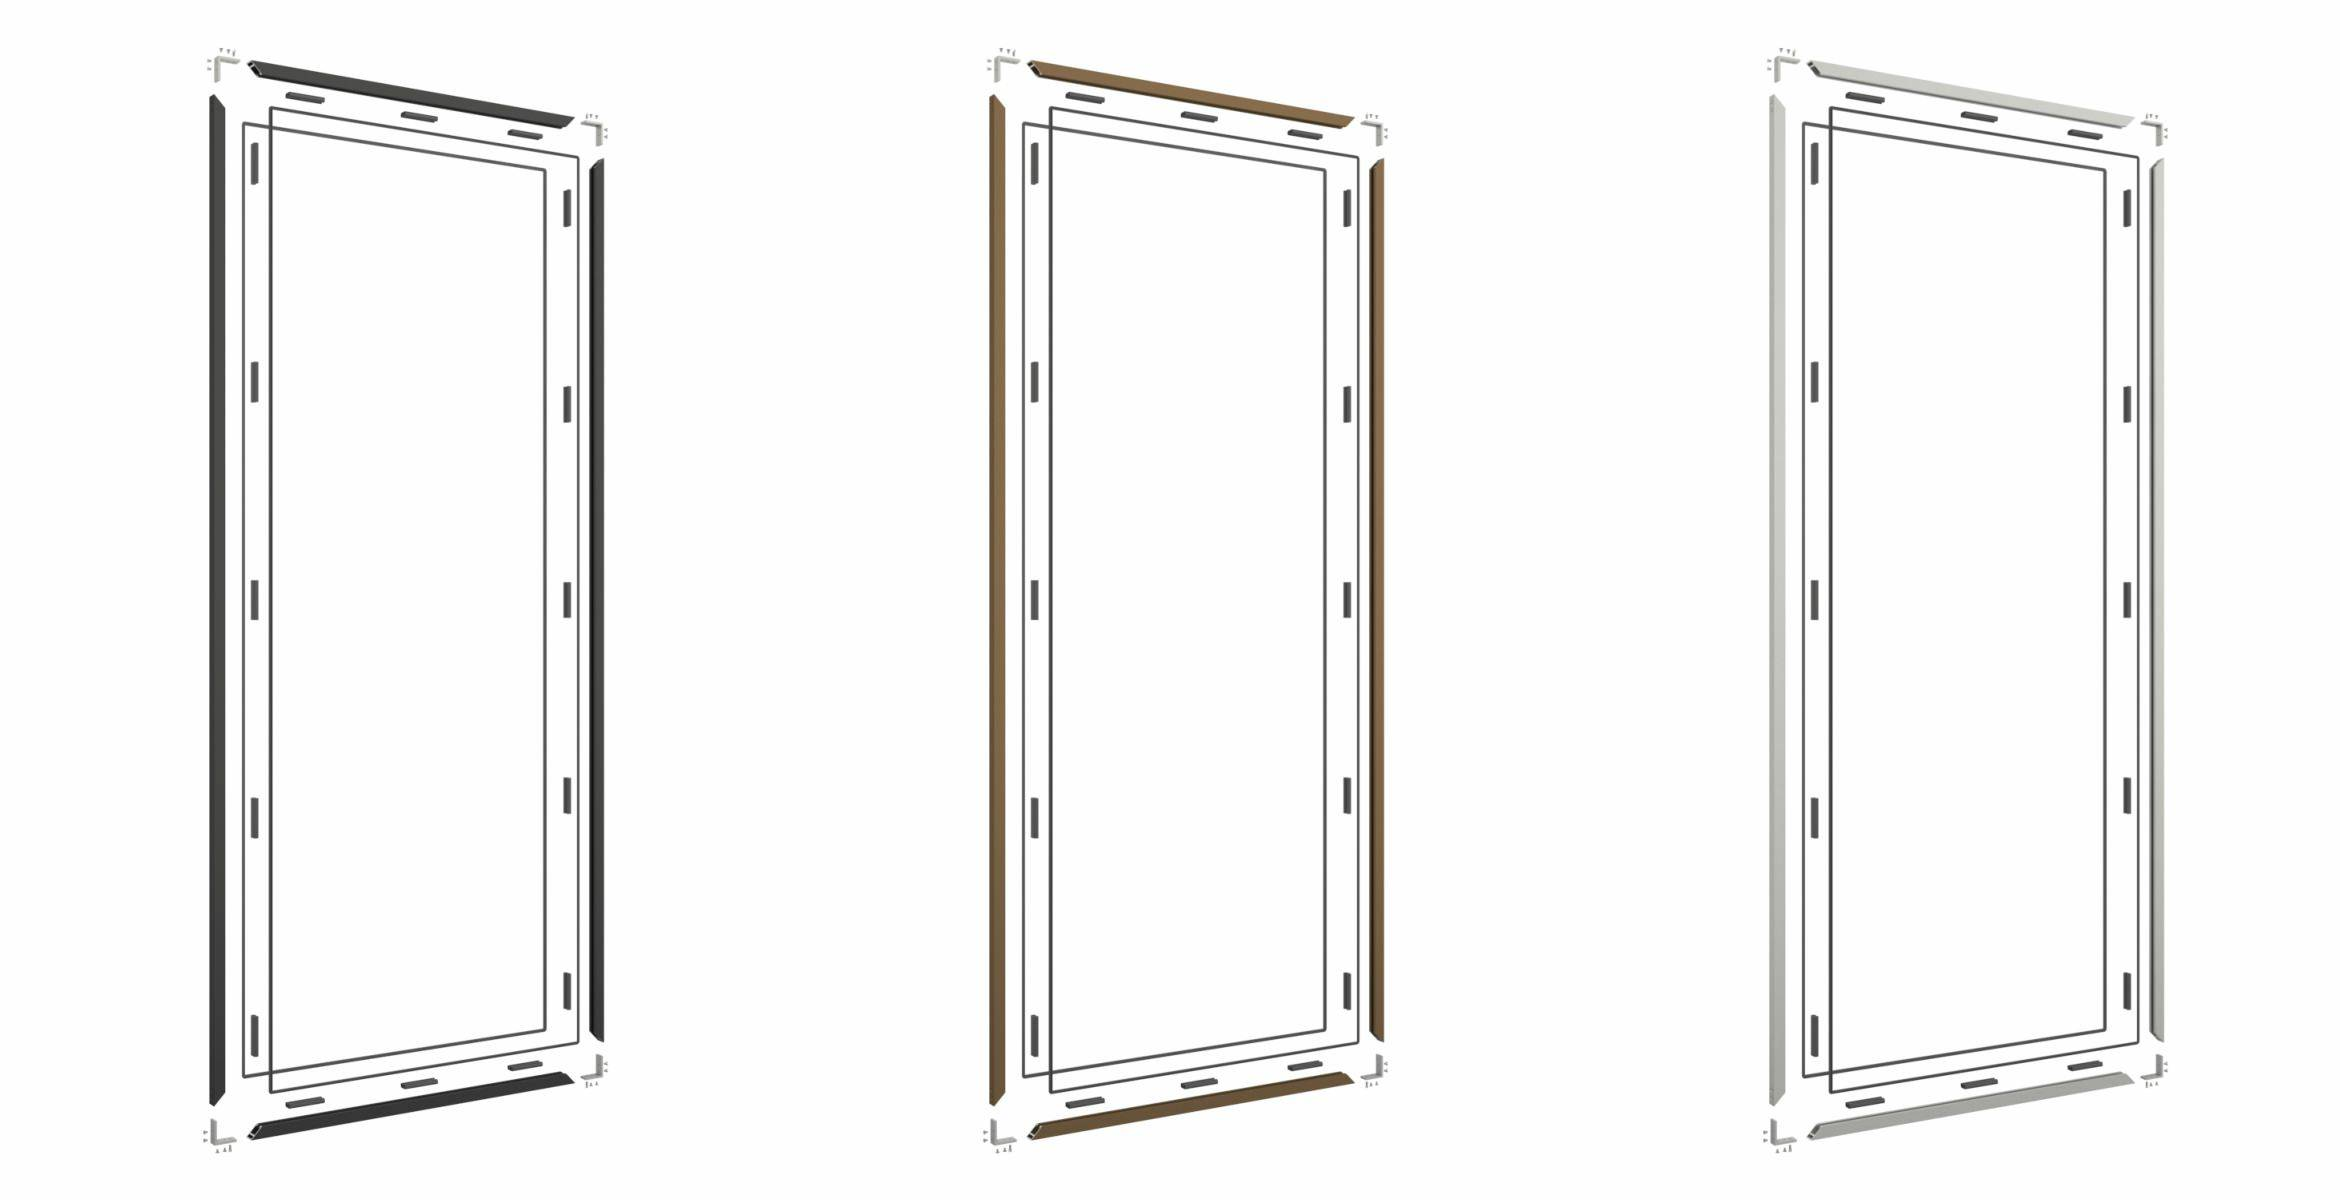 Portapivot 3030 self-assembly kit for glass partitions